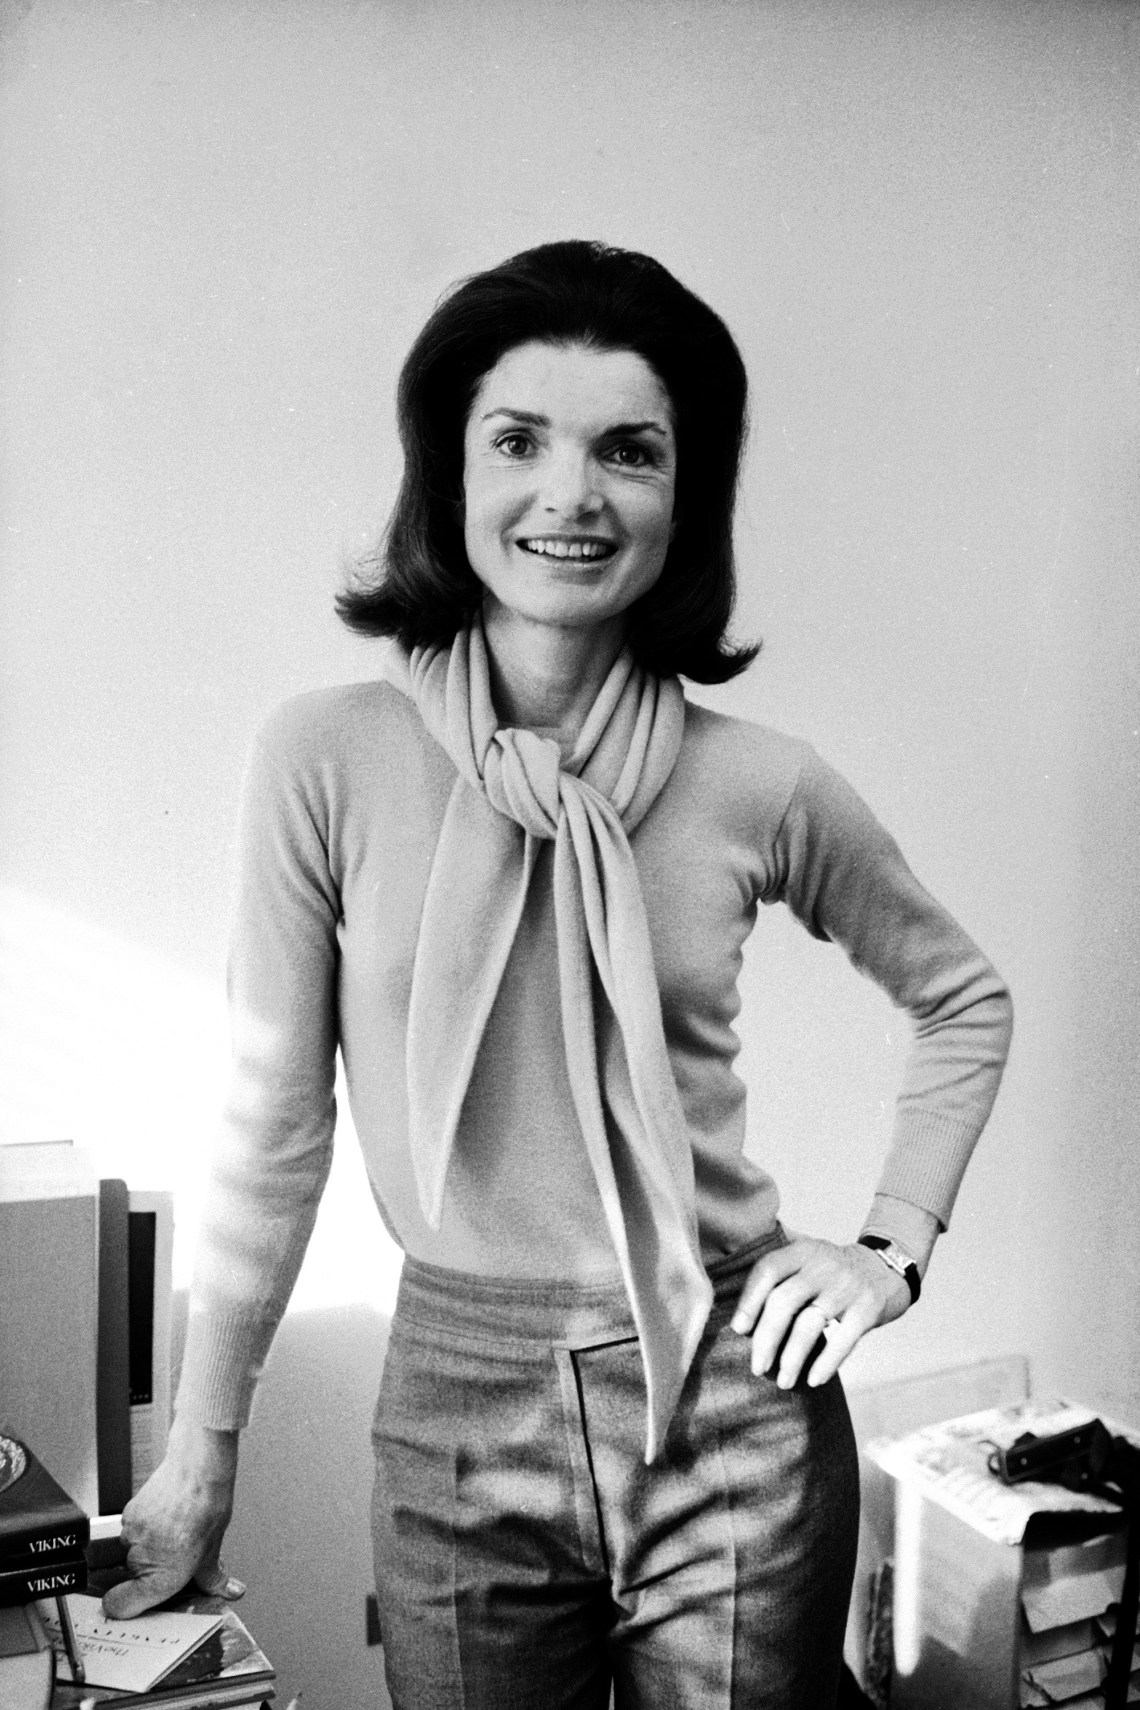 1438113542-hbz-jackie-kennedy-additions-gettyimages-2902616